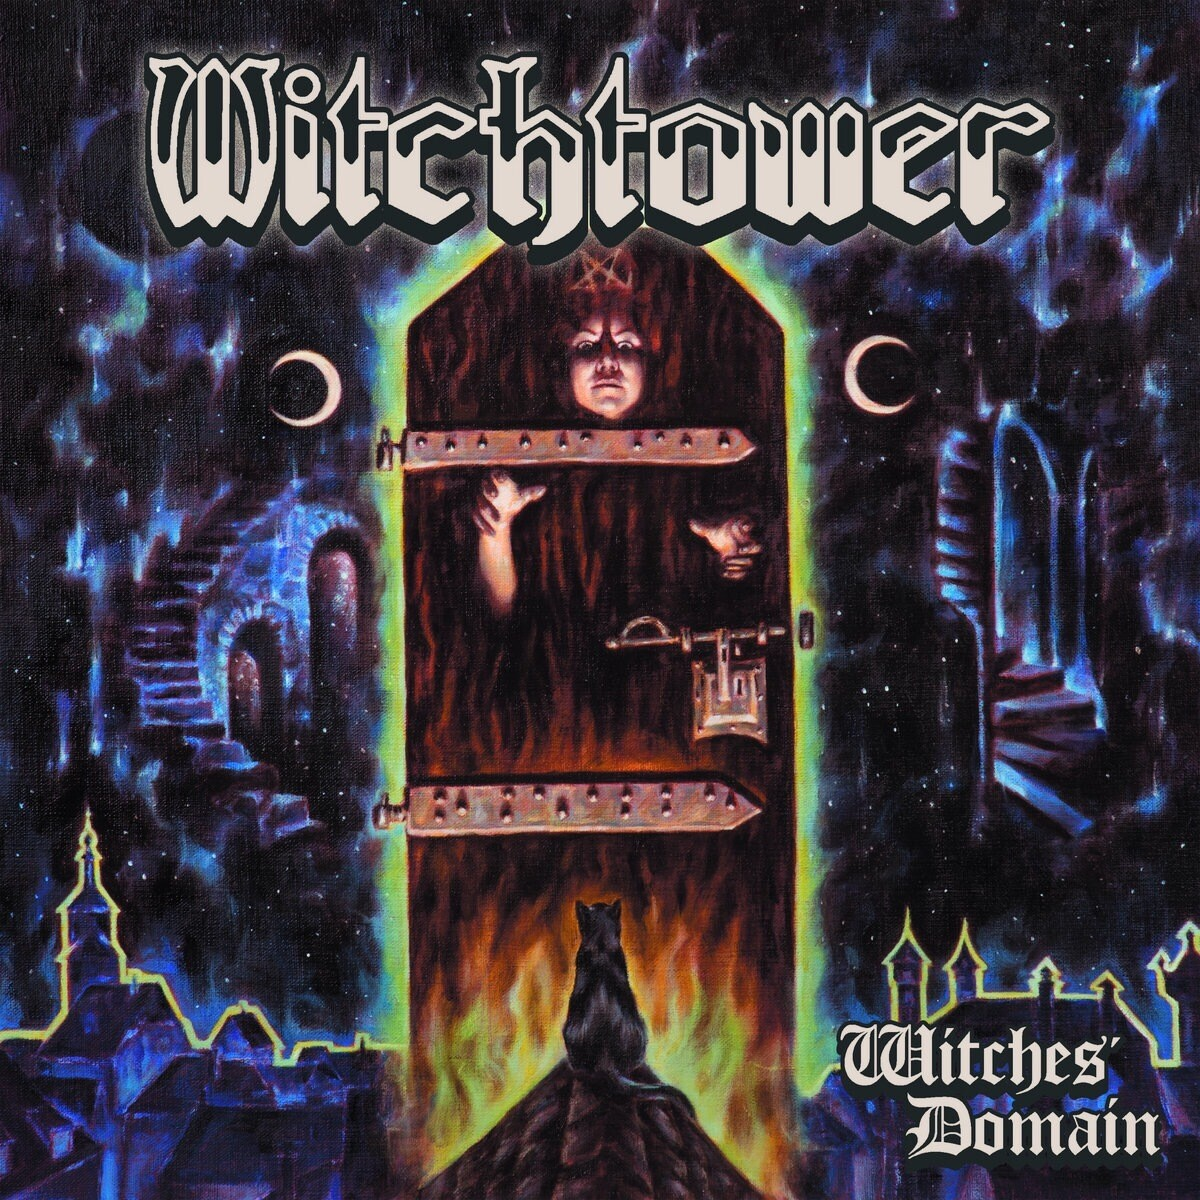 WITCHTOWER - Witches Domain LP